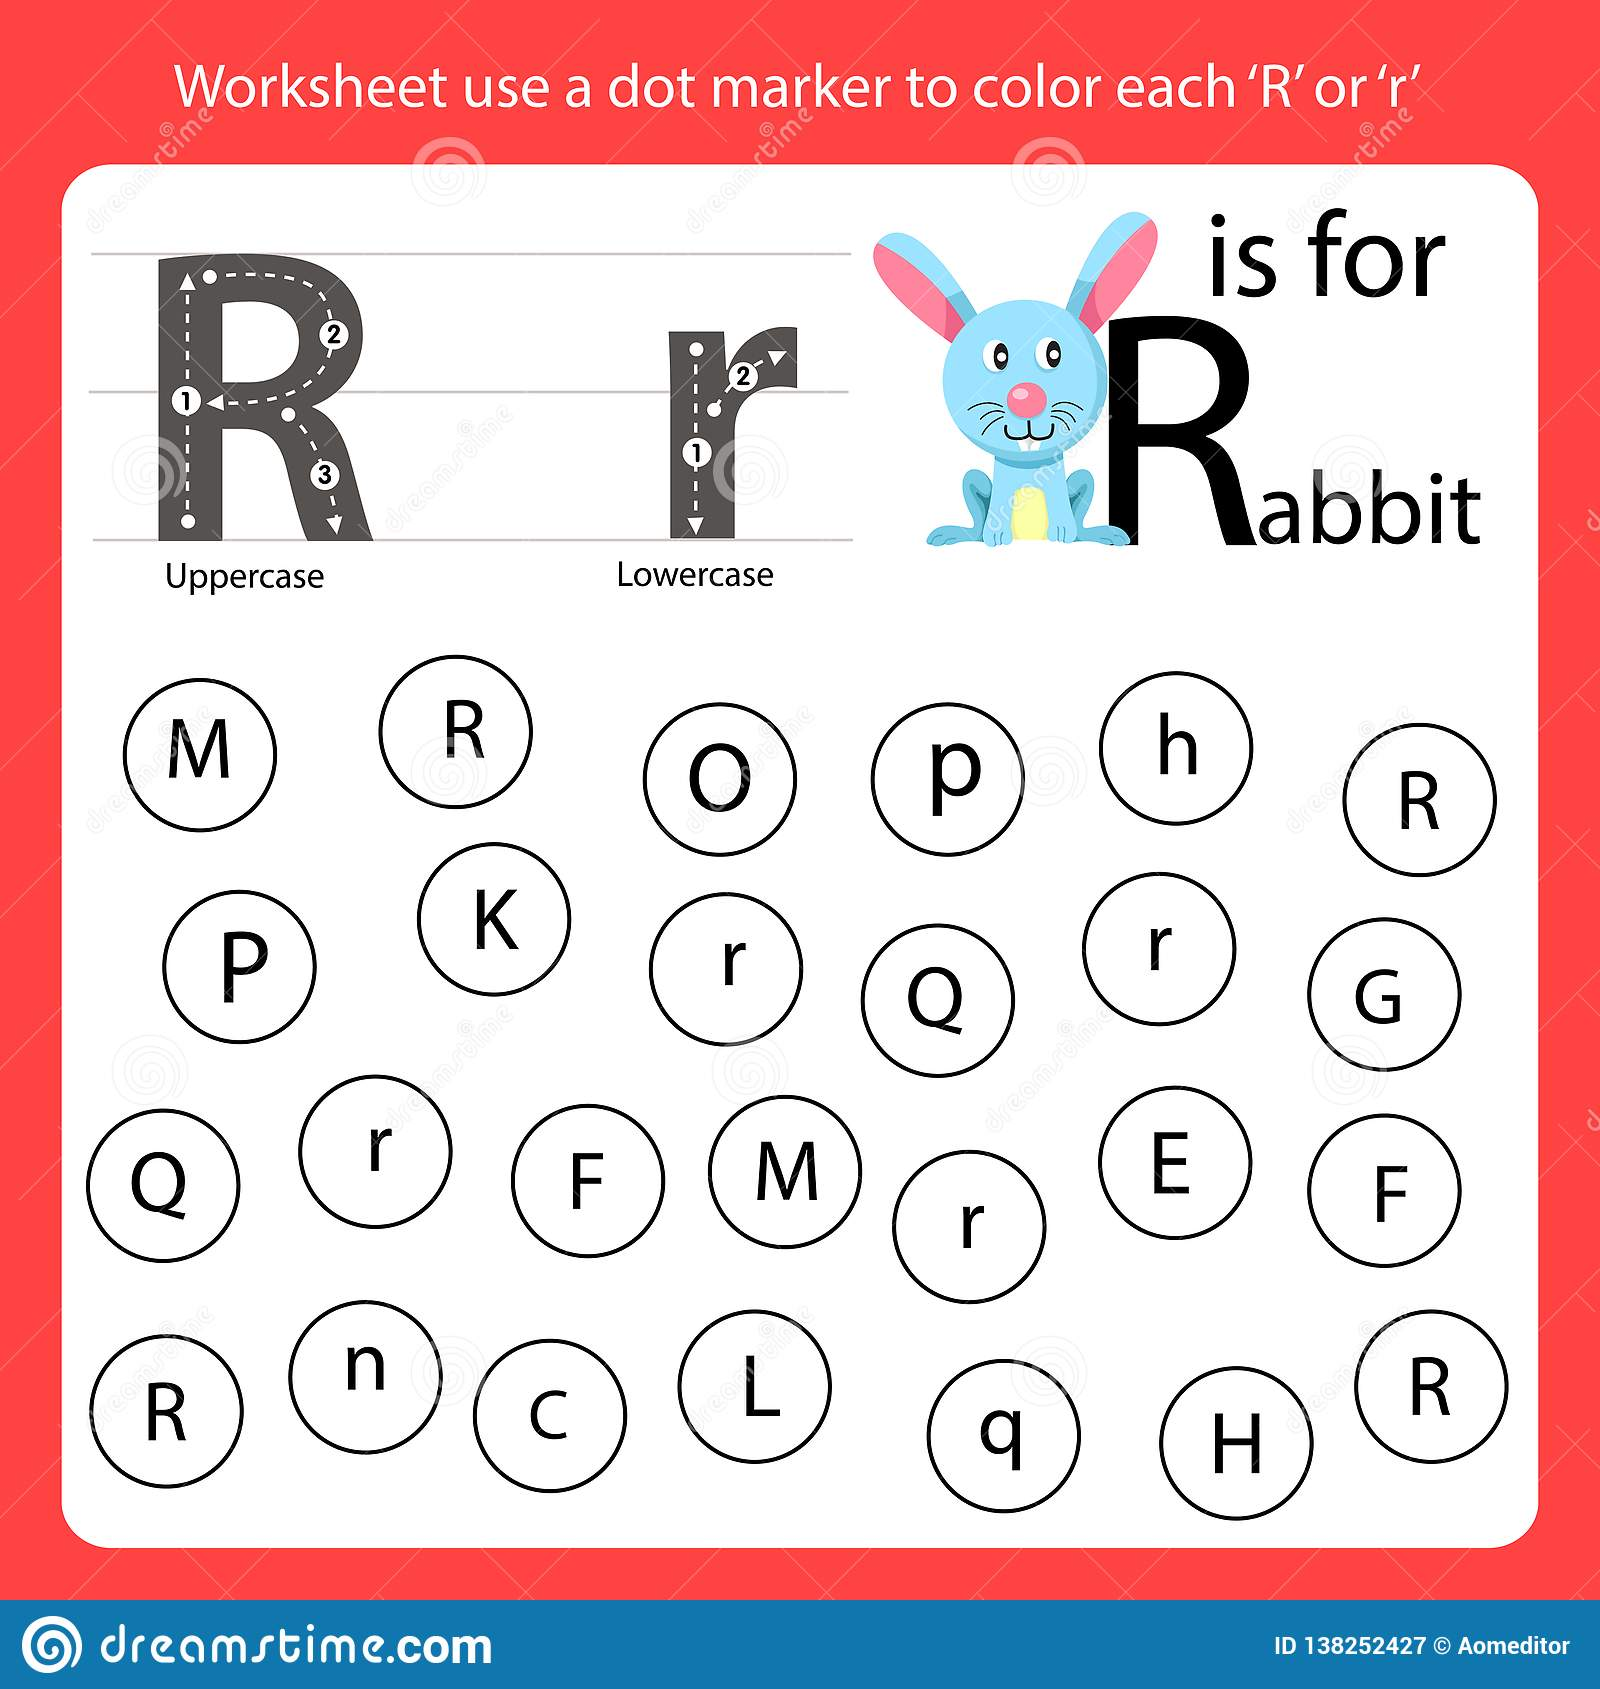 Find The Letter Worksheet Use A Dot Marker To Color Each R